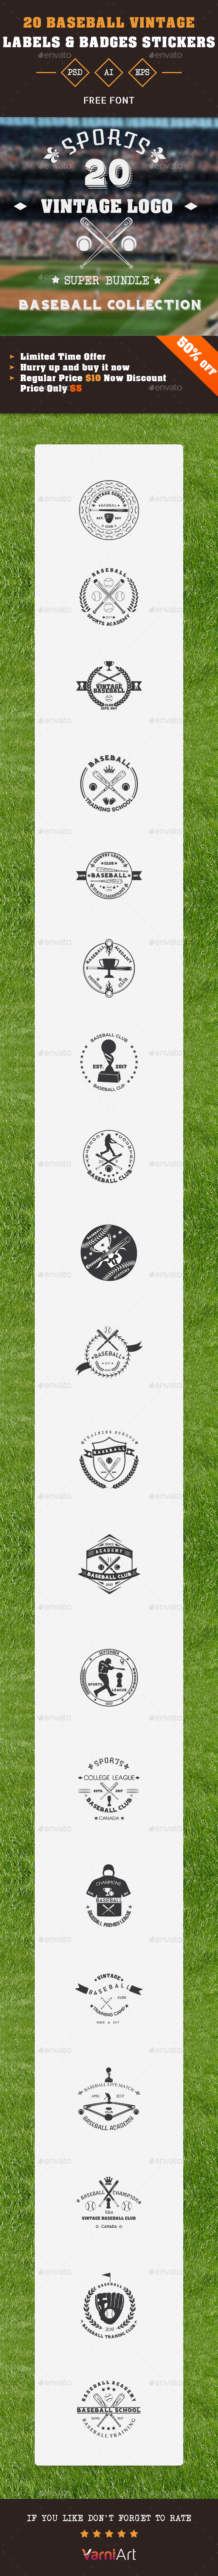 20 Baseball Club Vintage Labels - Badges & Stickers Web Elements